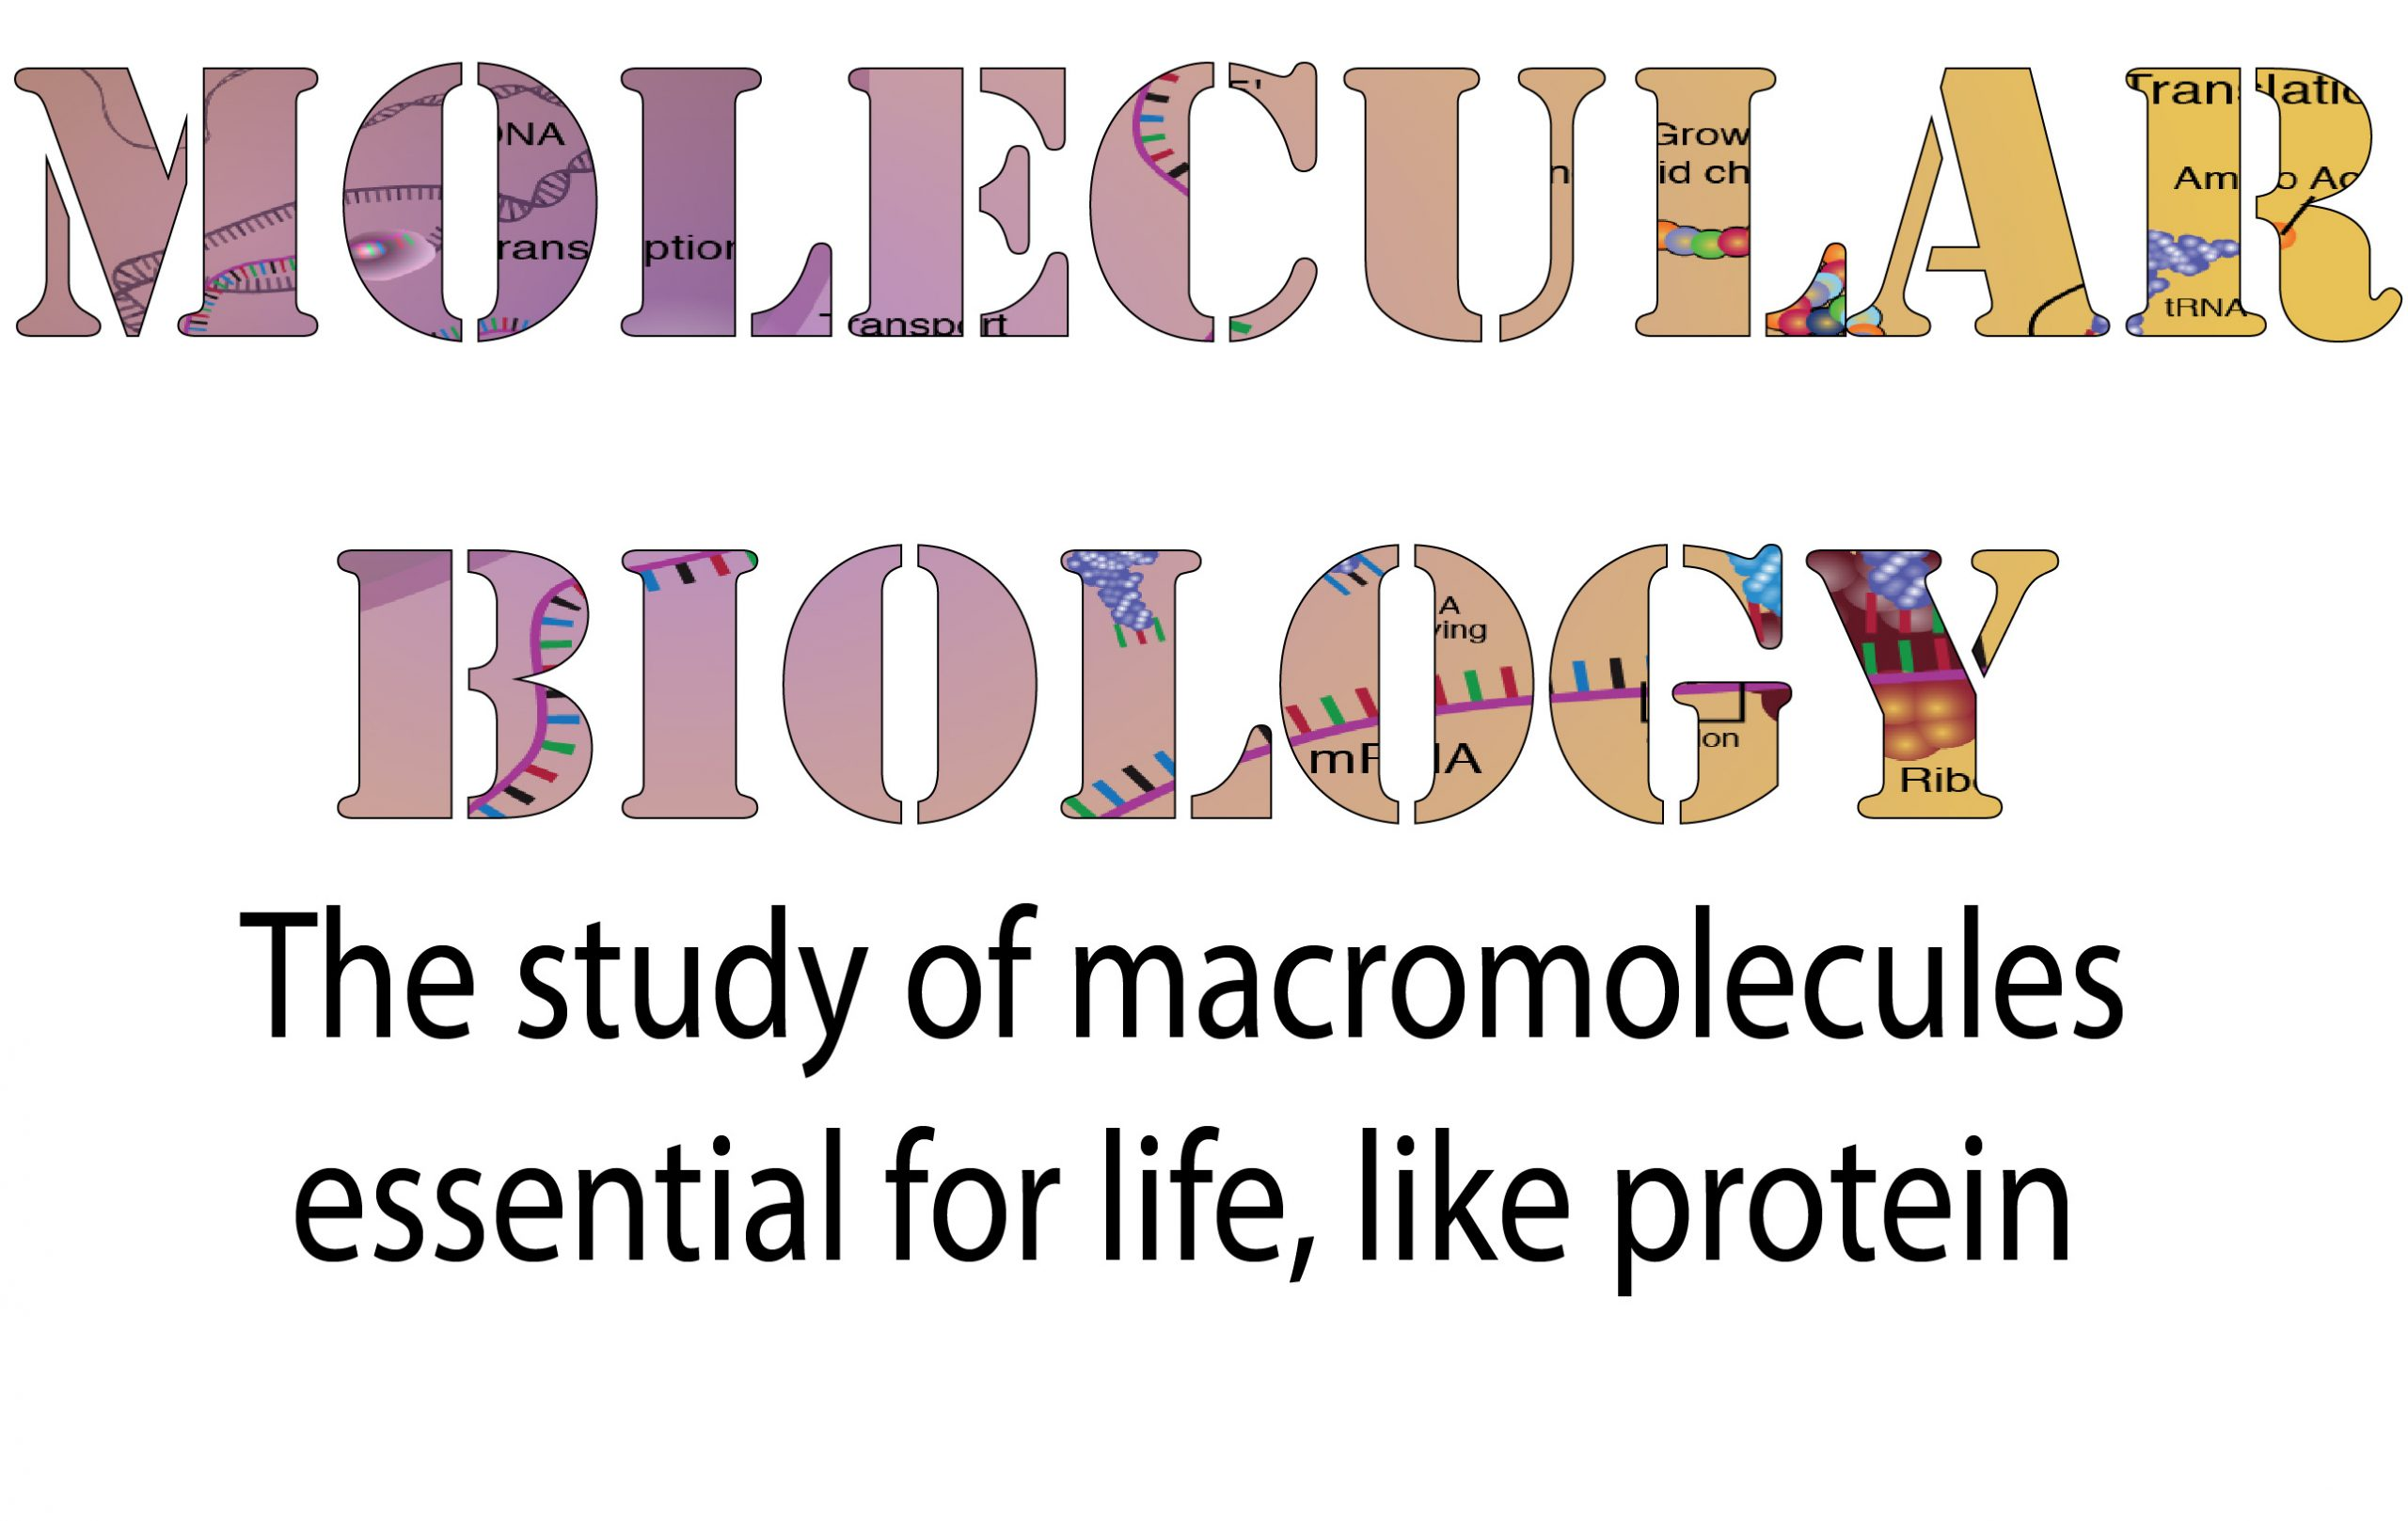 Molecular biology is the study of macromolecules essential for life, like protein